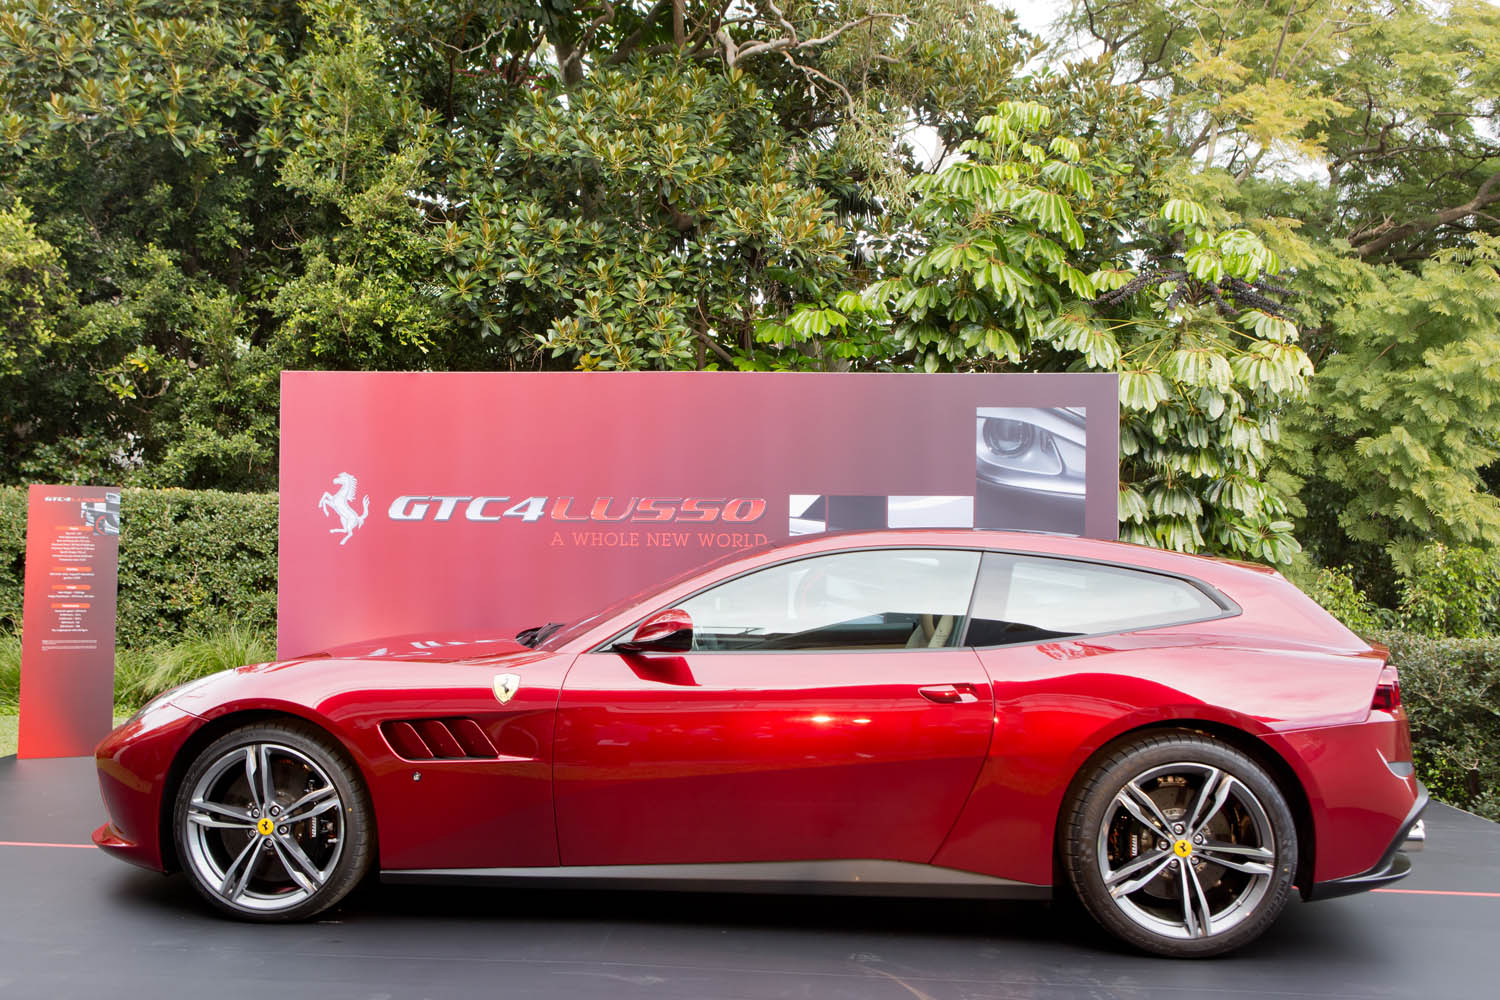 Ferrari Launches Latest Supercars In Southern Hemisphere